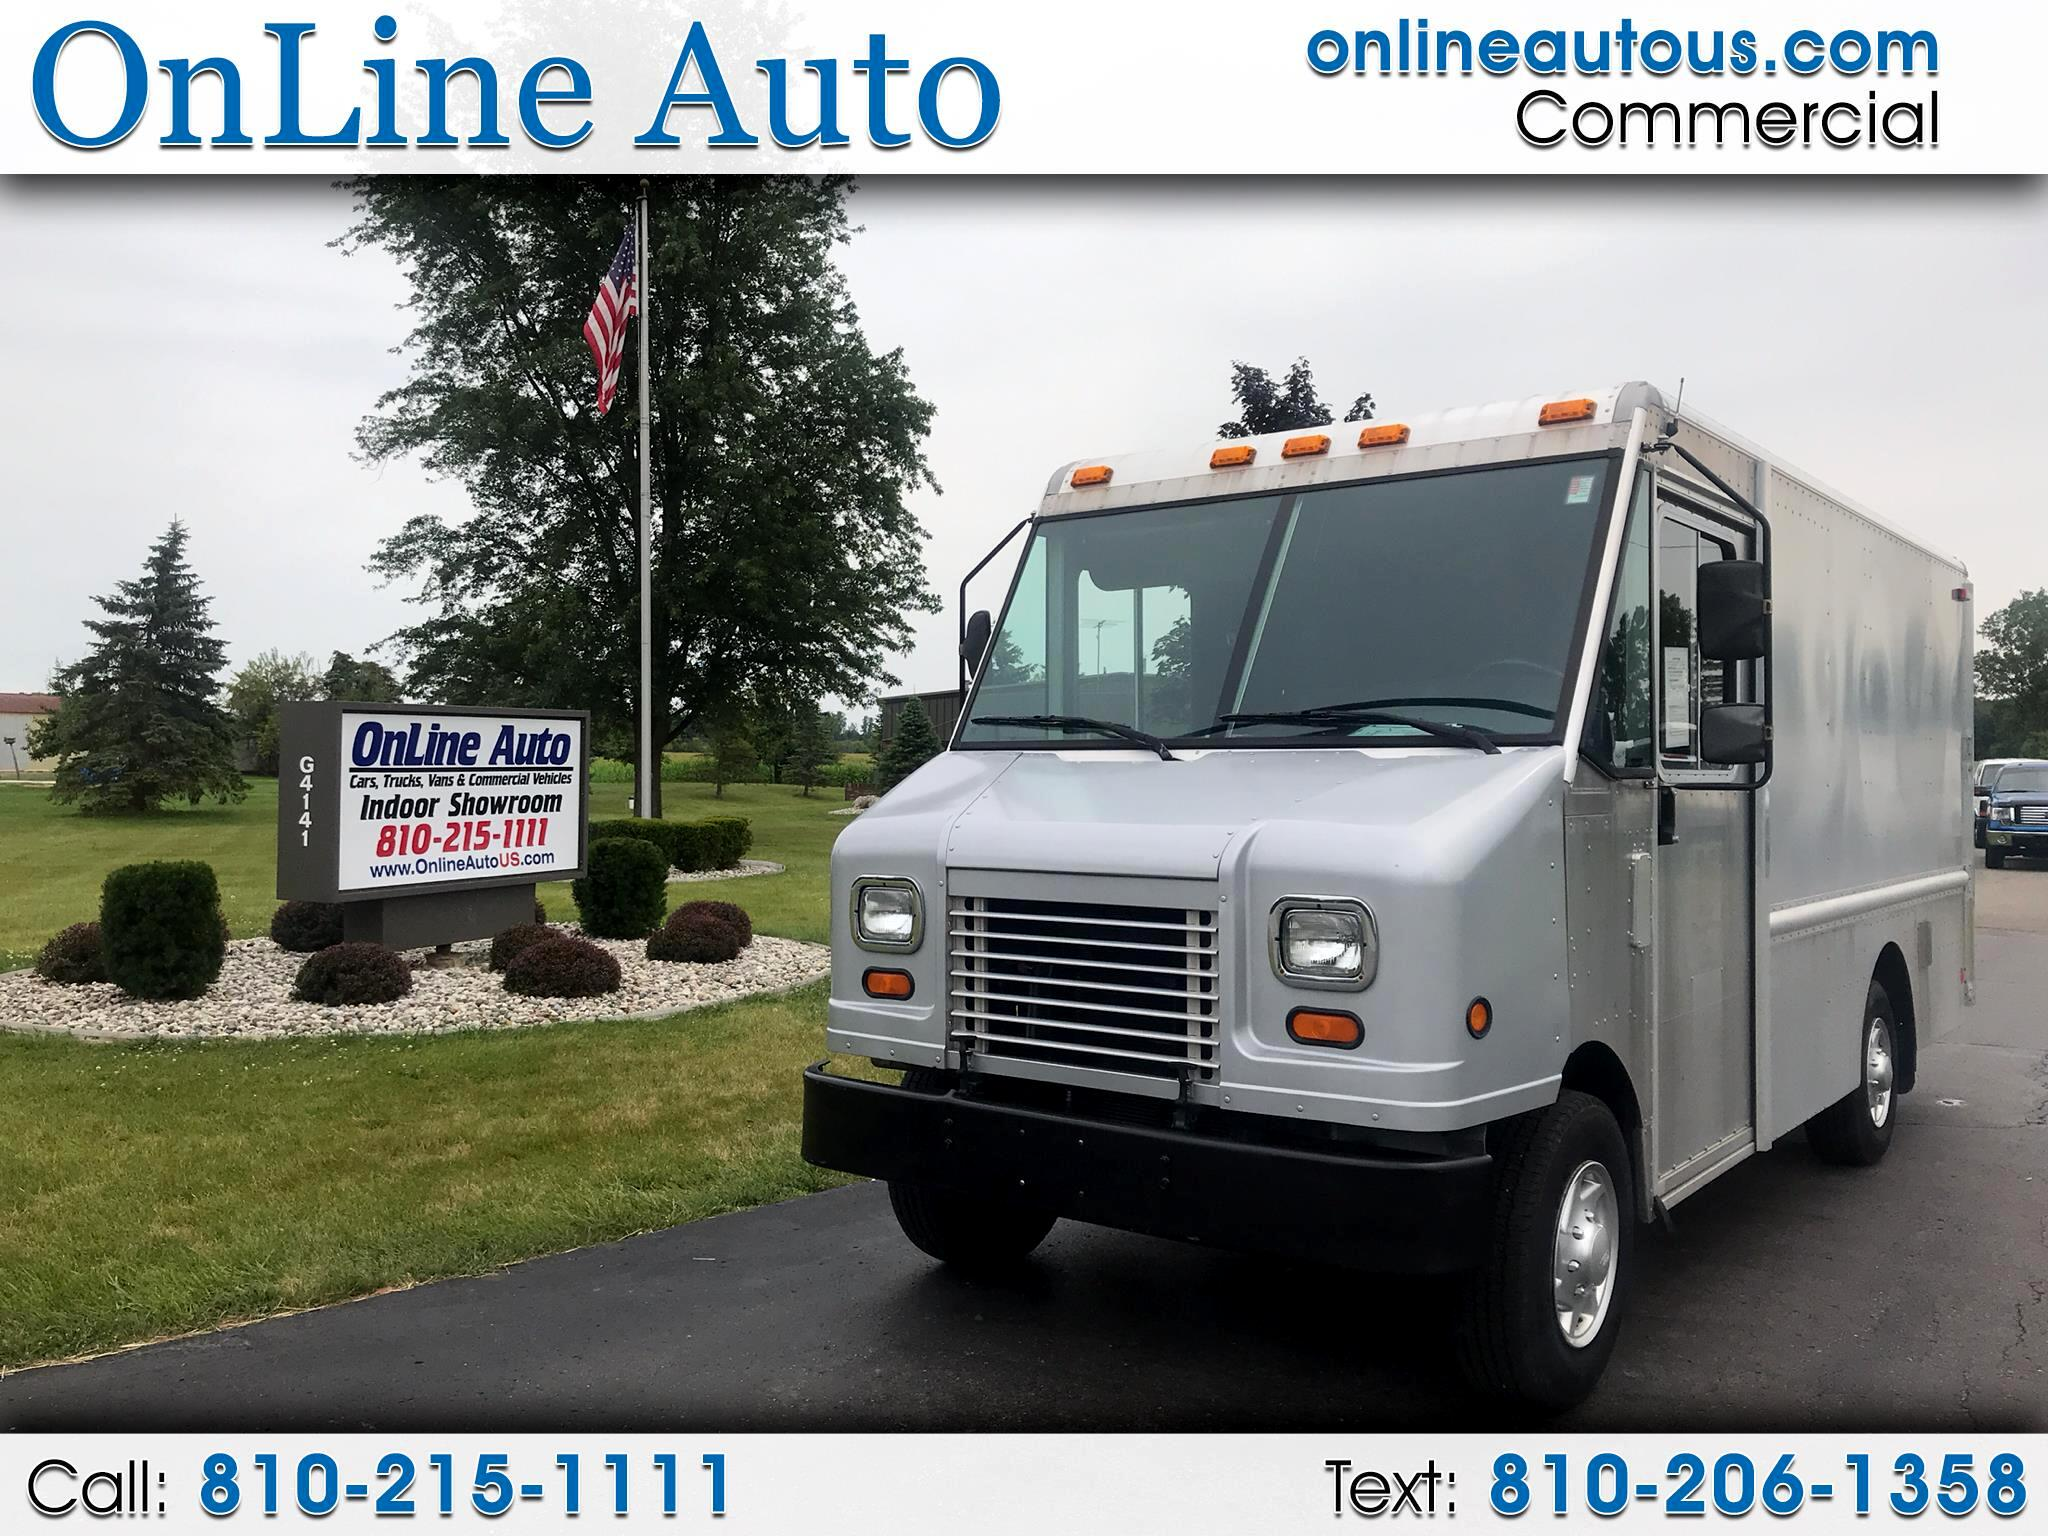 2010 Ford E-350 Super Duty 14' STEP VAN